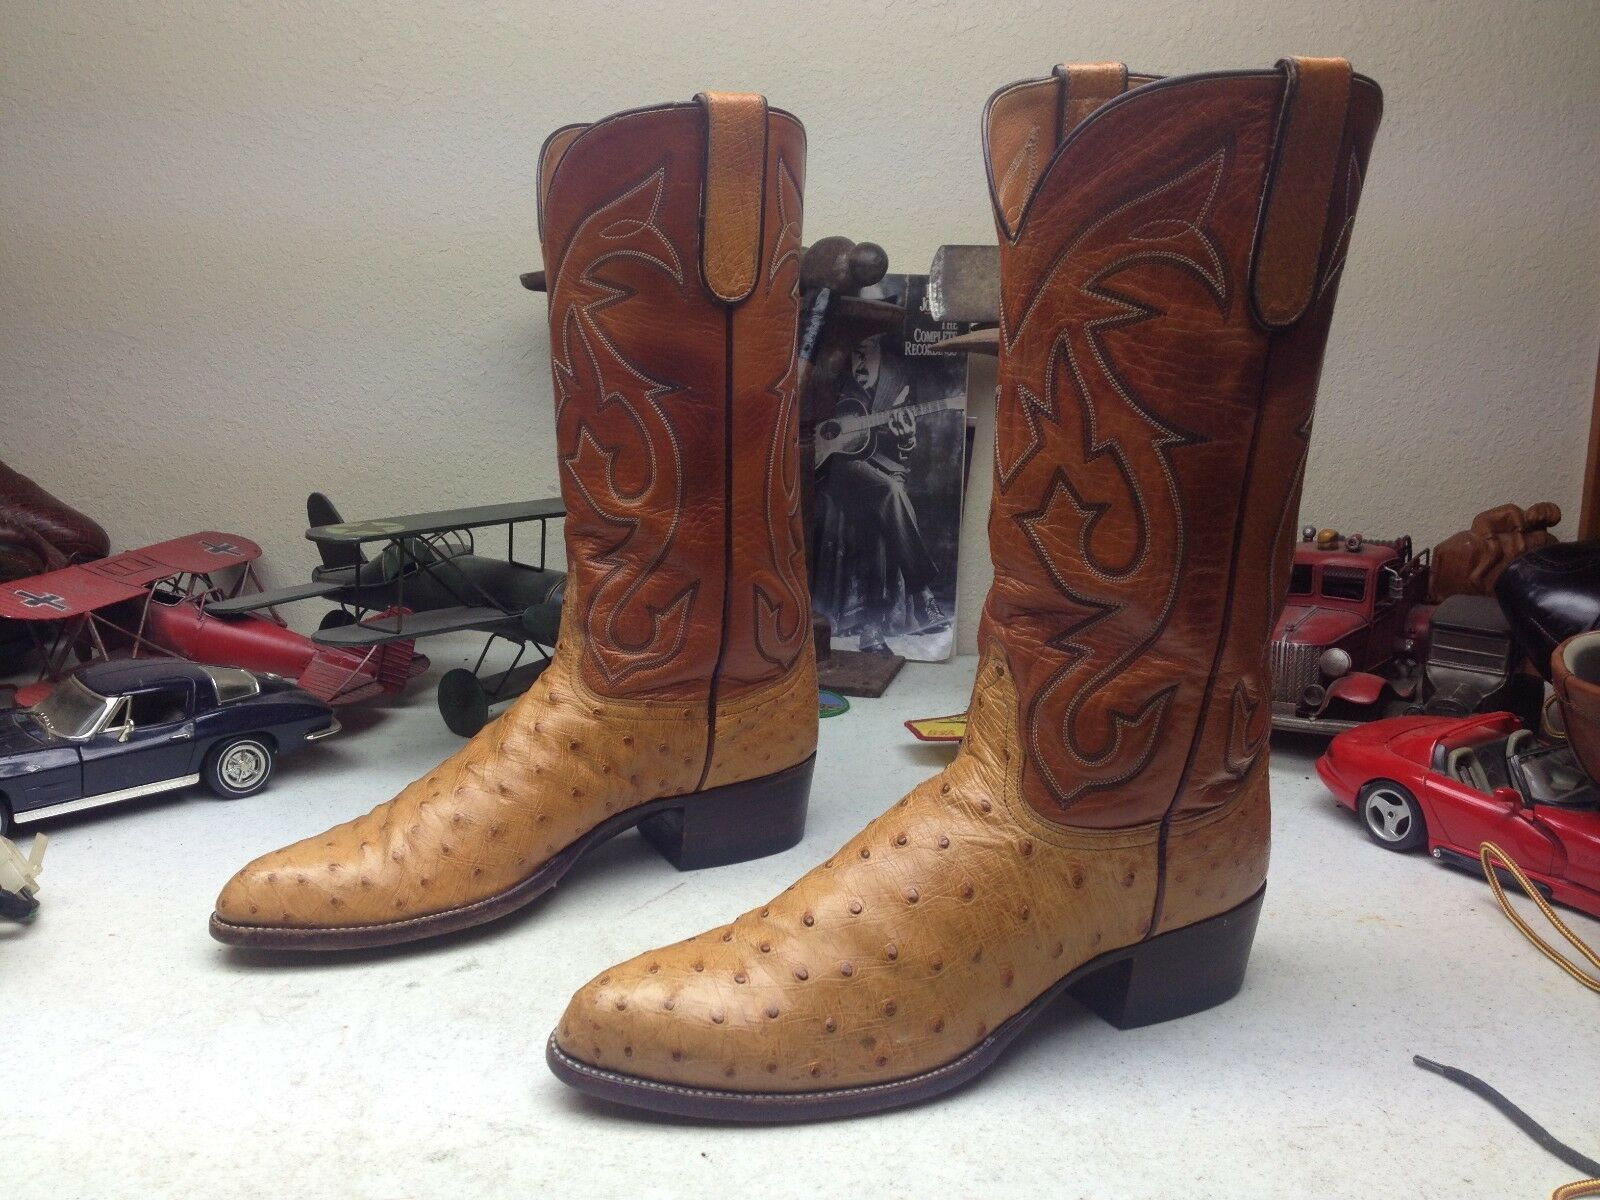 MILTON ALLEN of HOUSTON GOGNAC OSTRICH LEATHER TRAIL BOSS DANCE bottes 10.5 D